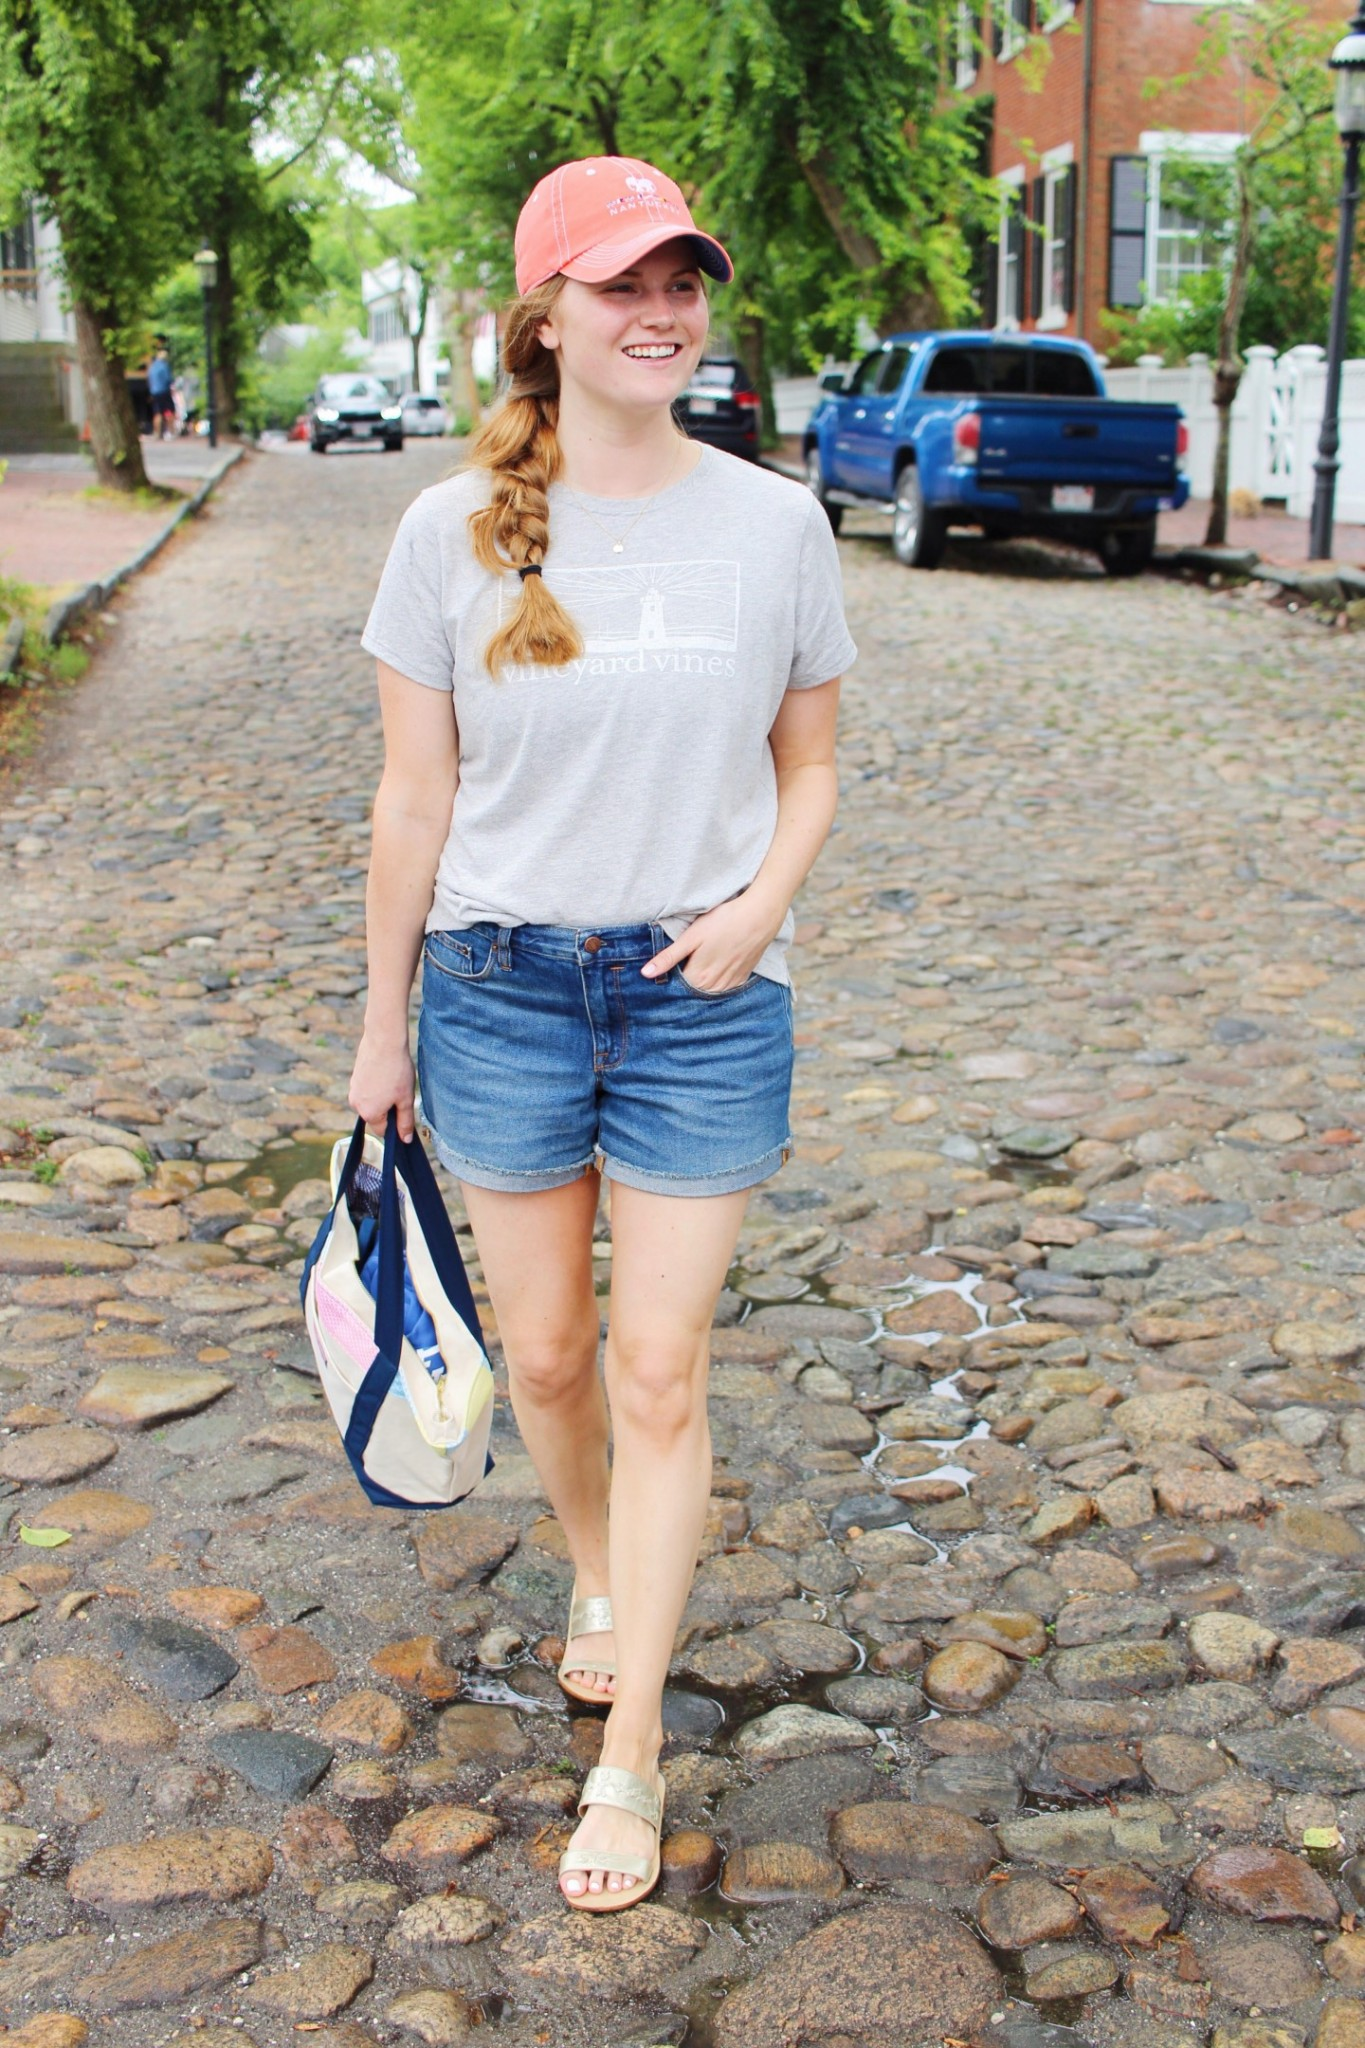 Popular London Lifestyle blogger Mollie Moore shares 12 things to do in Nantucket